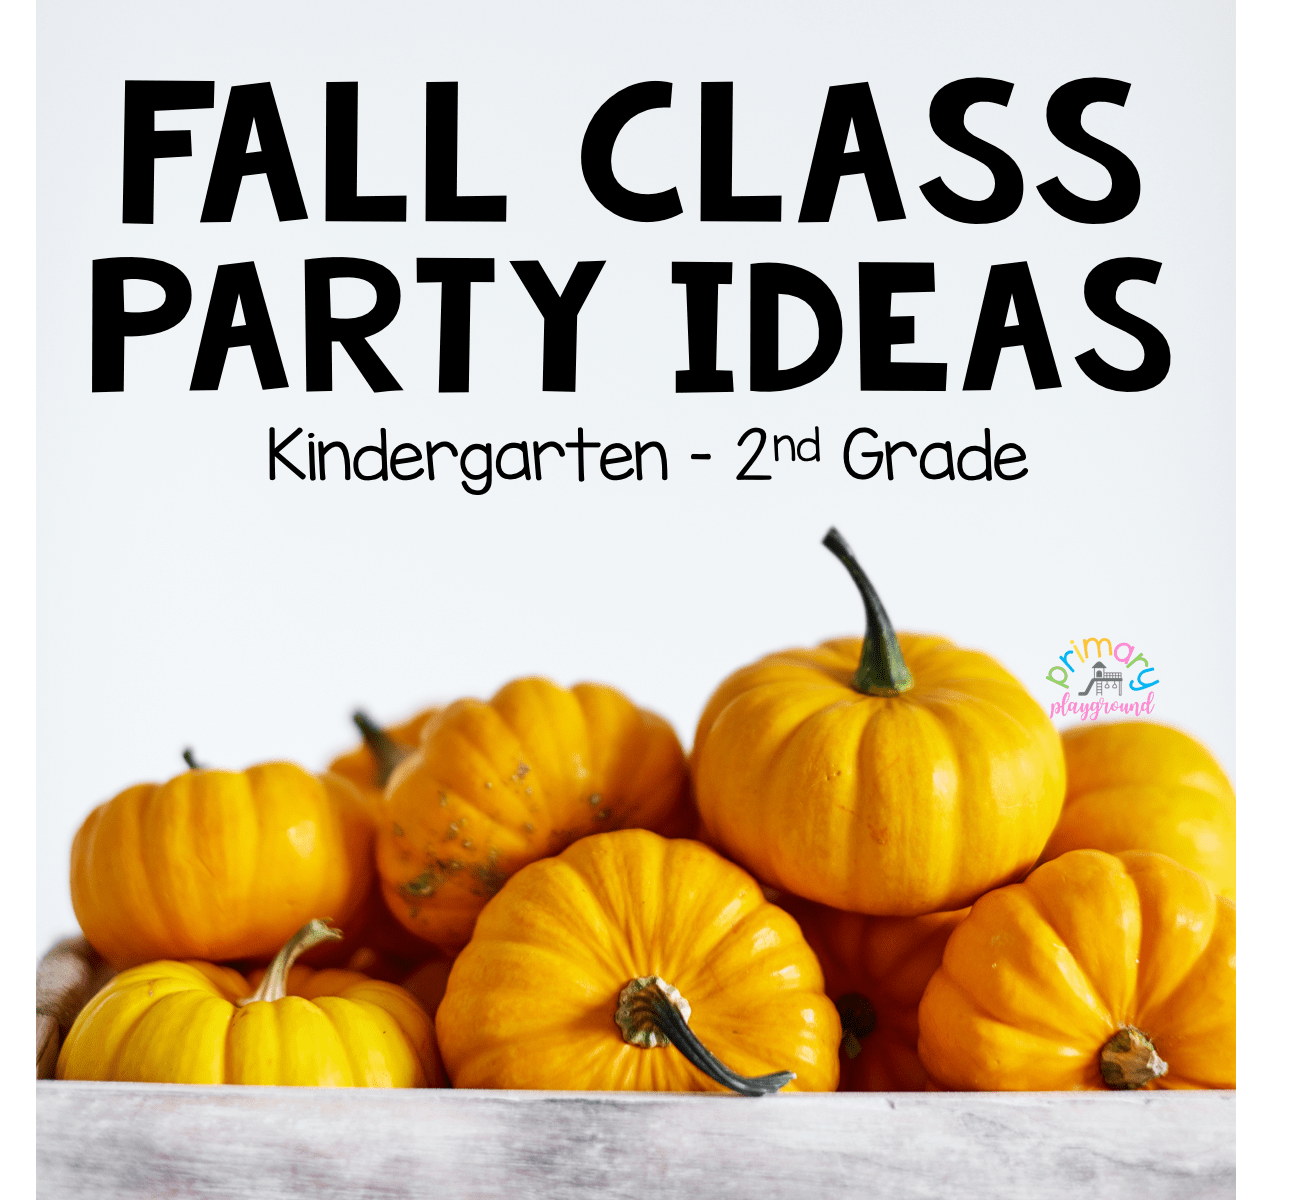 Fall Class Party Ideas Kindergarten 2nd Grade Primary Playground